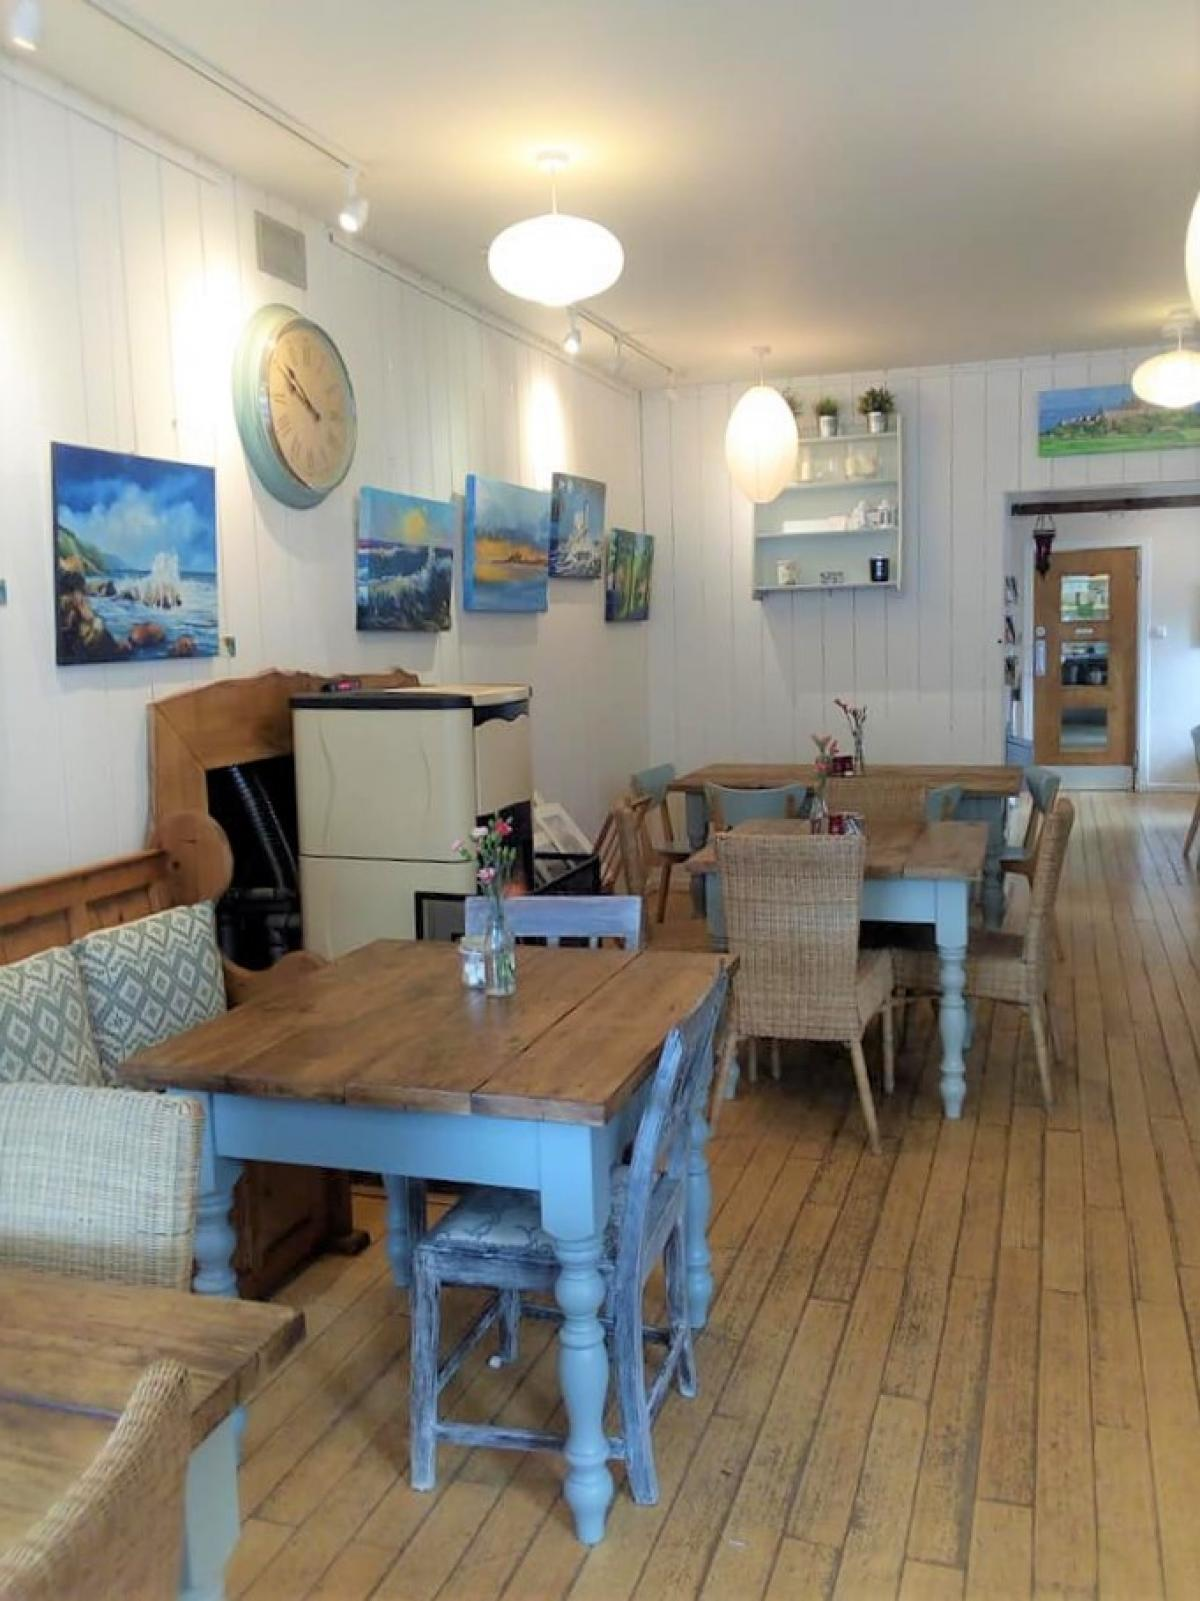 Images from Cloudhouse Café-Gallery